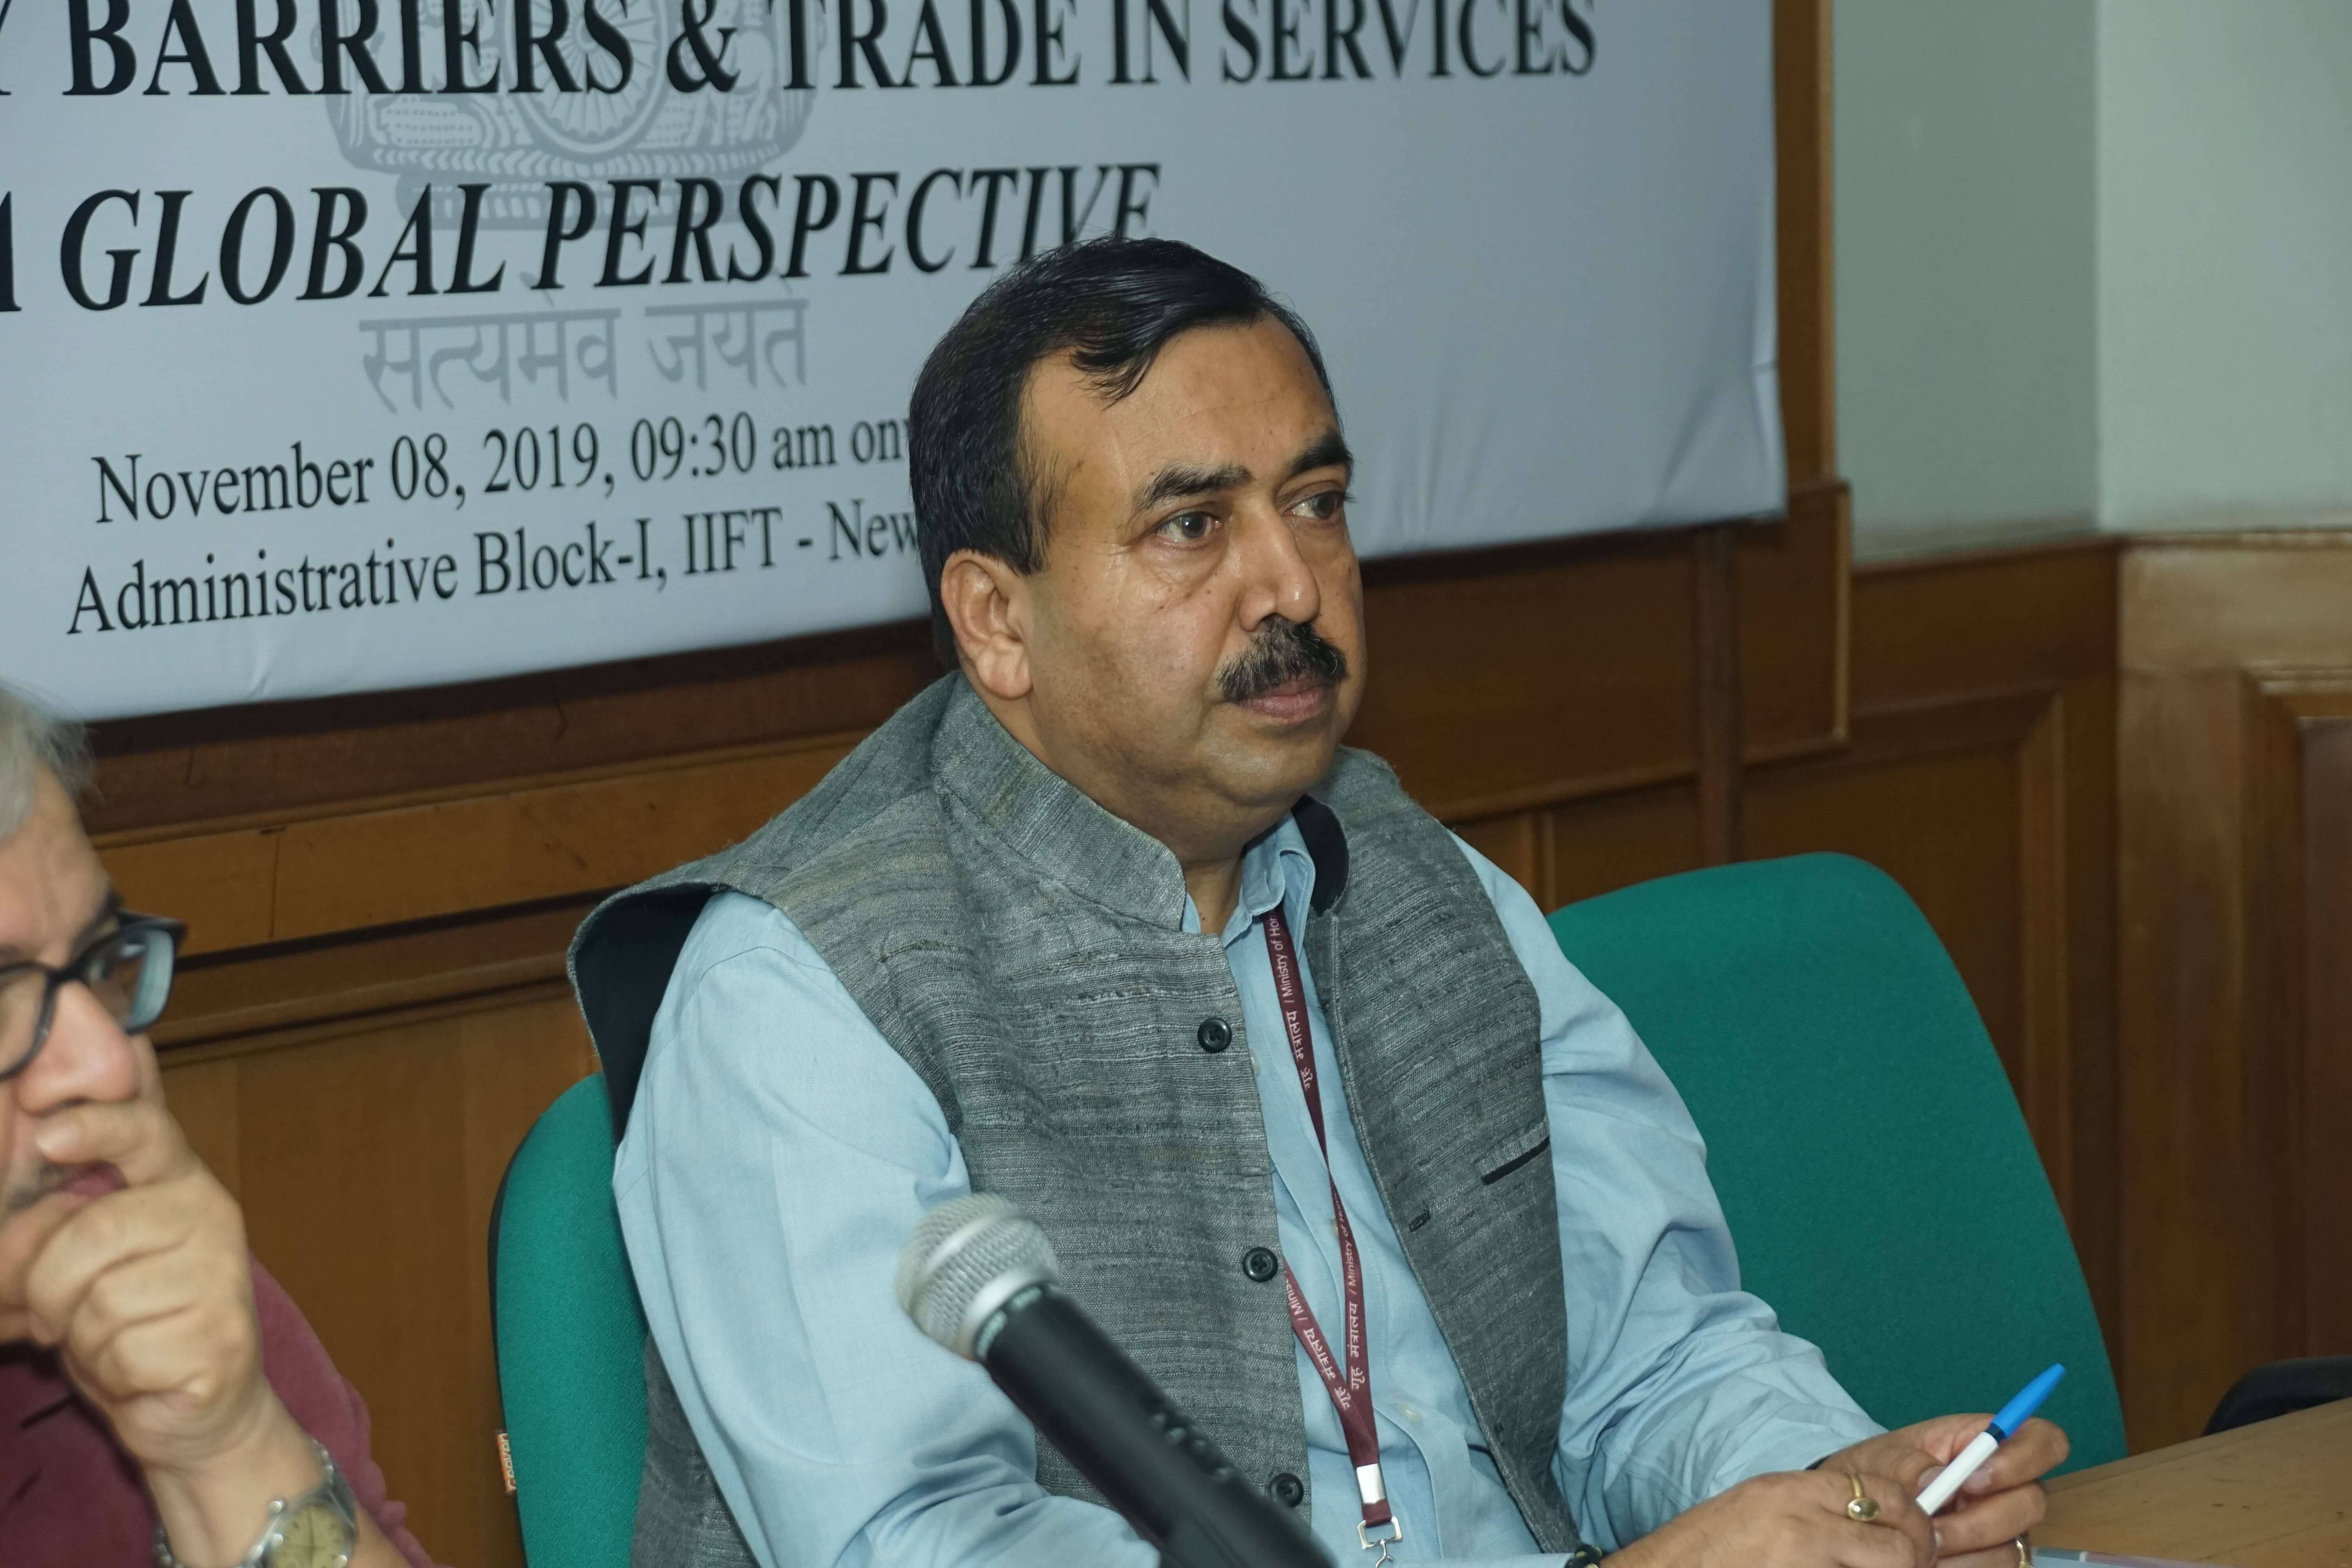 Mr. Sudhanshu Pandey, AS, DoC in the discussion on Regulatory Barriers and Trade in Services